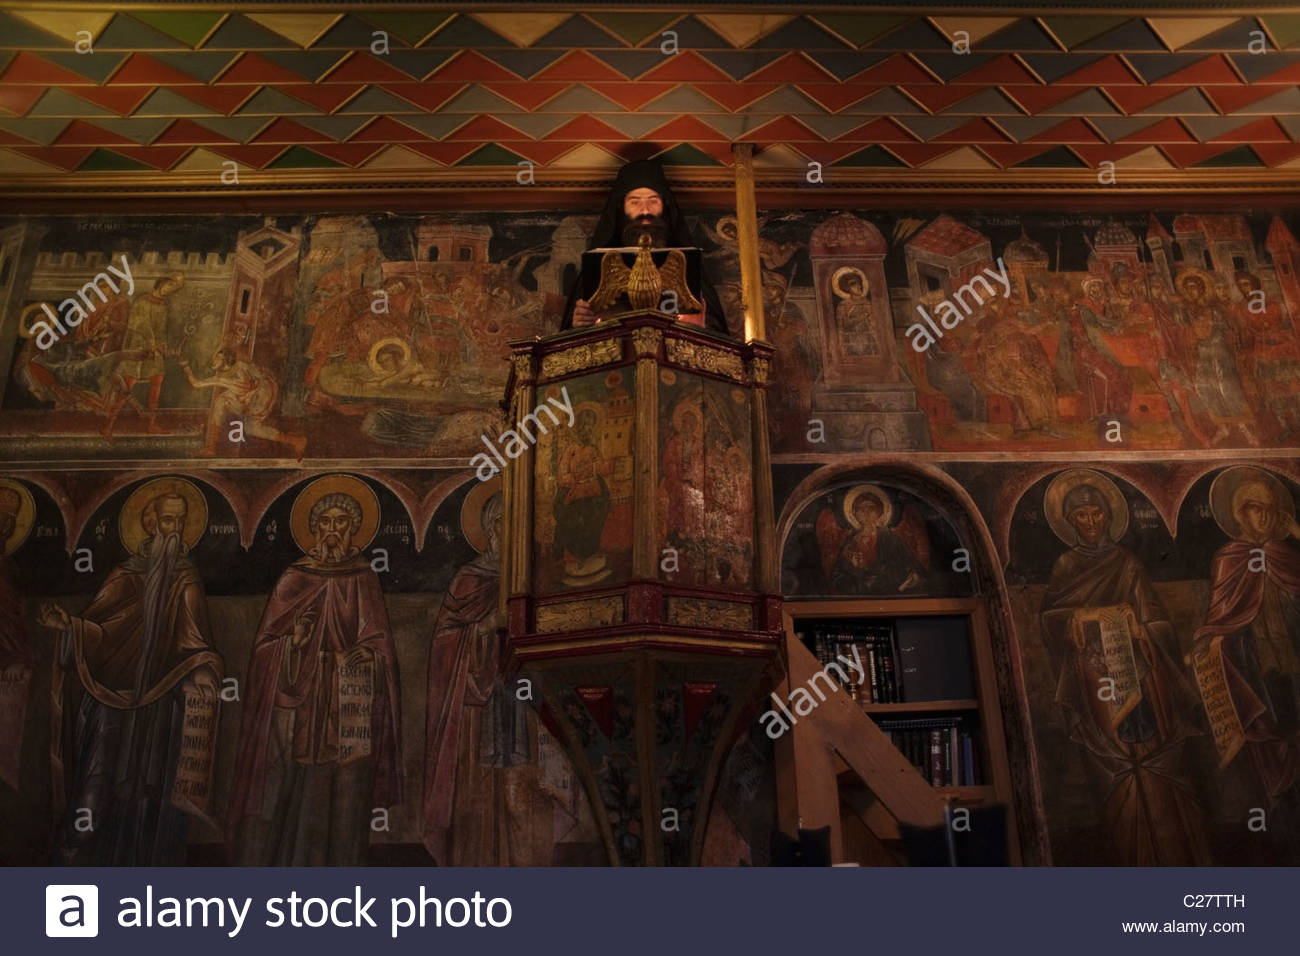 A monk reads the Scripture in the dining hall of the Xenofontos monastery. - Stock Image